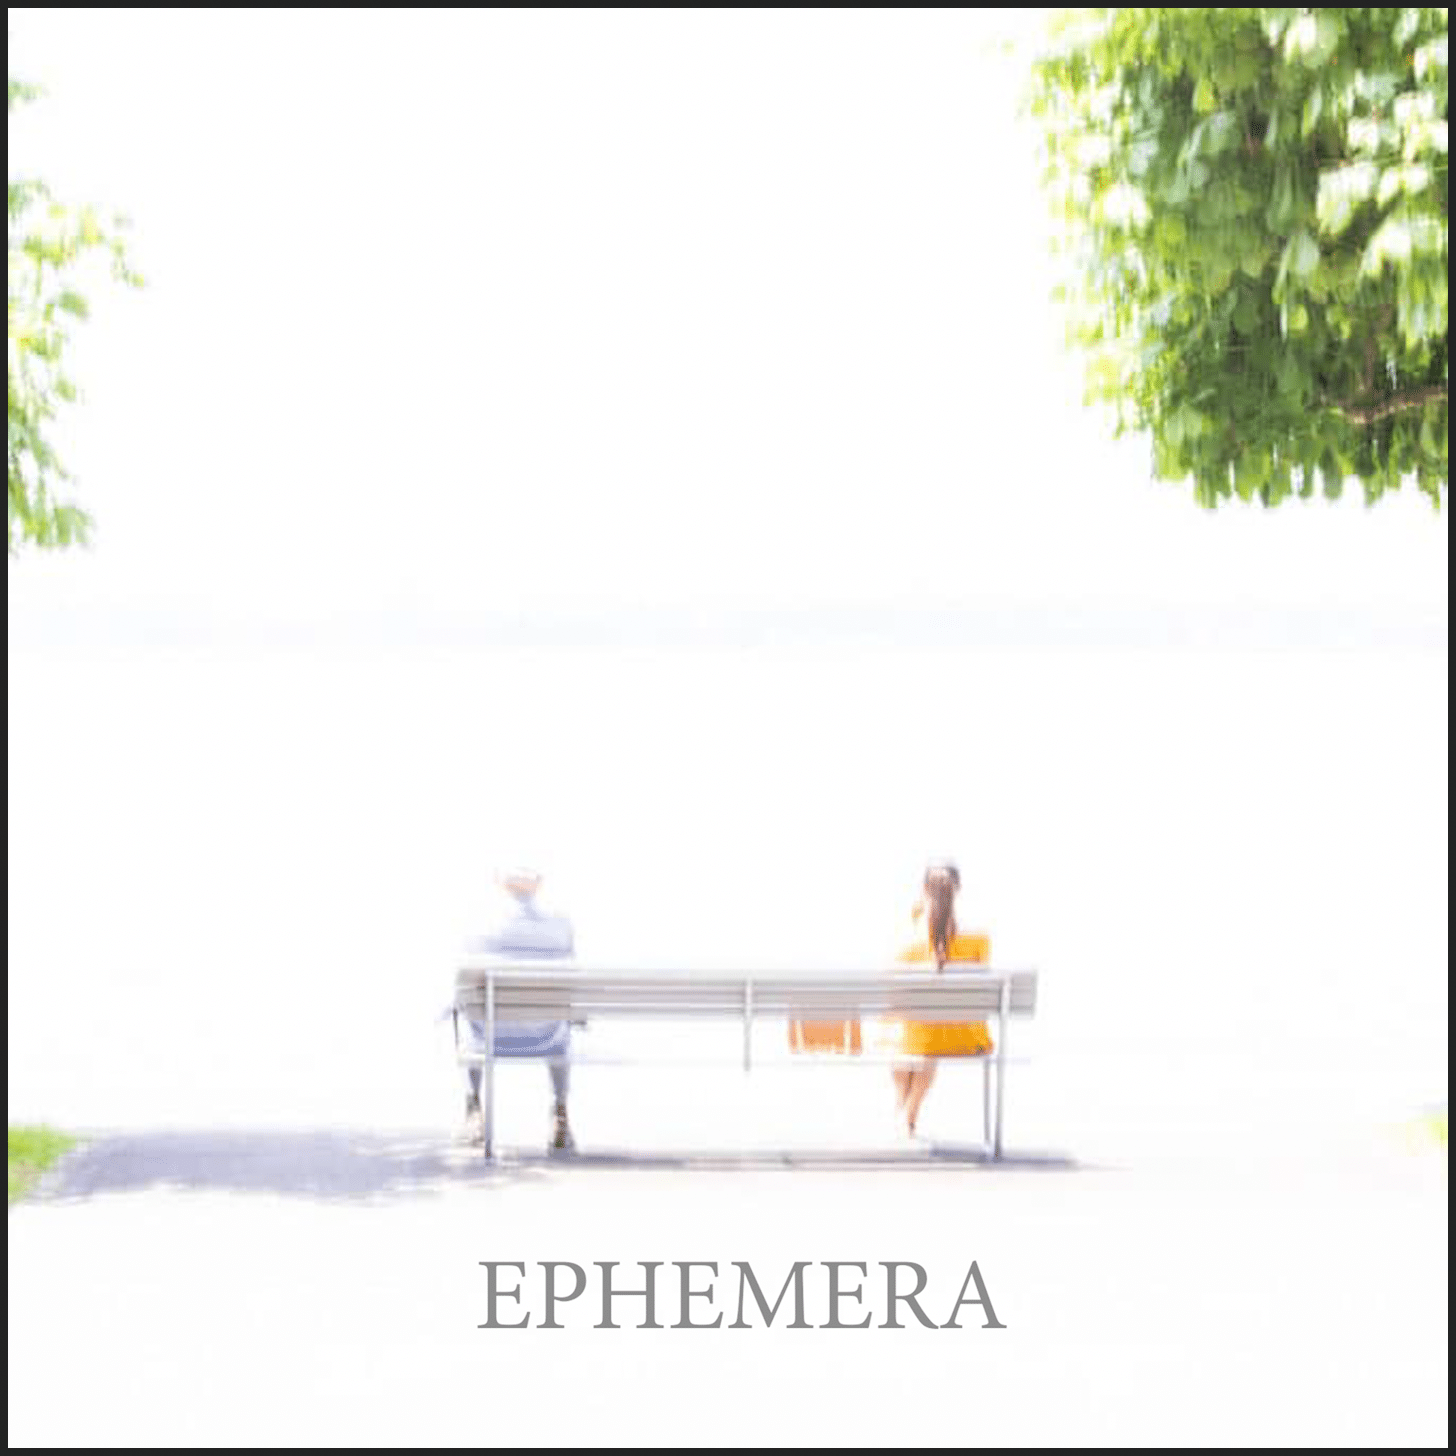 a bright soft focus image of a man and woman on a bench looking out into a white void